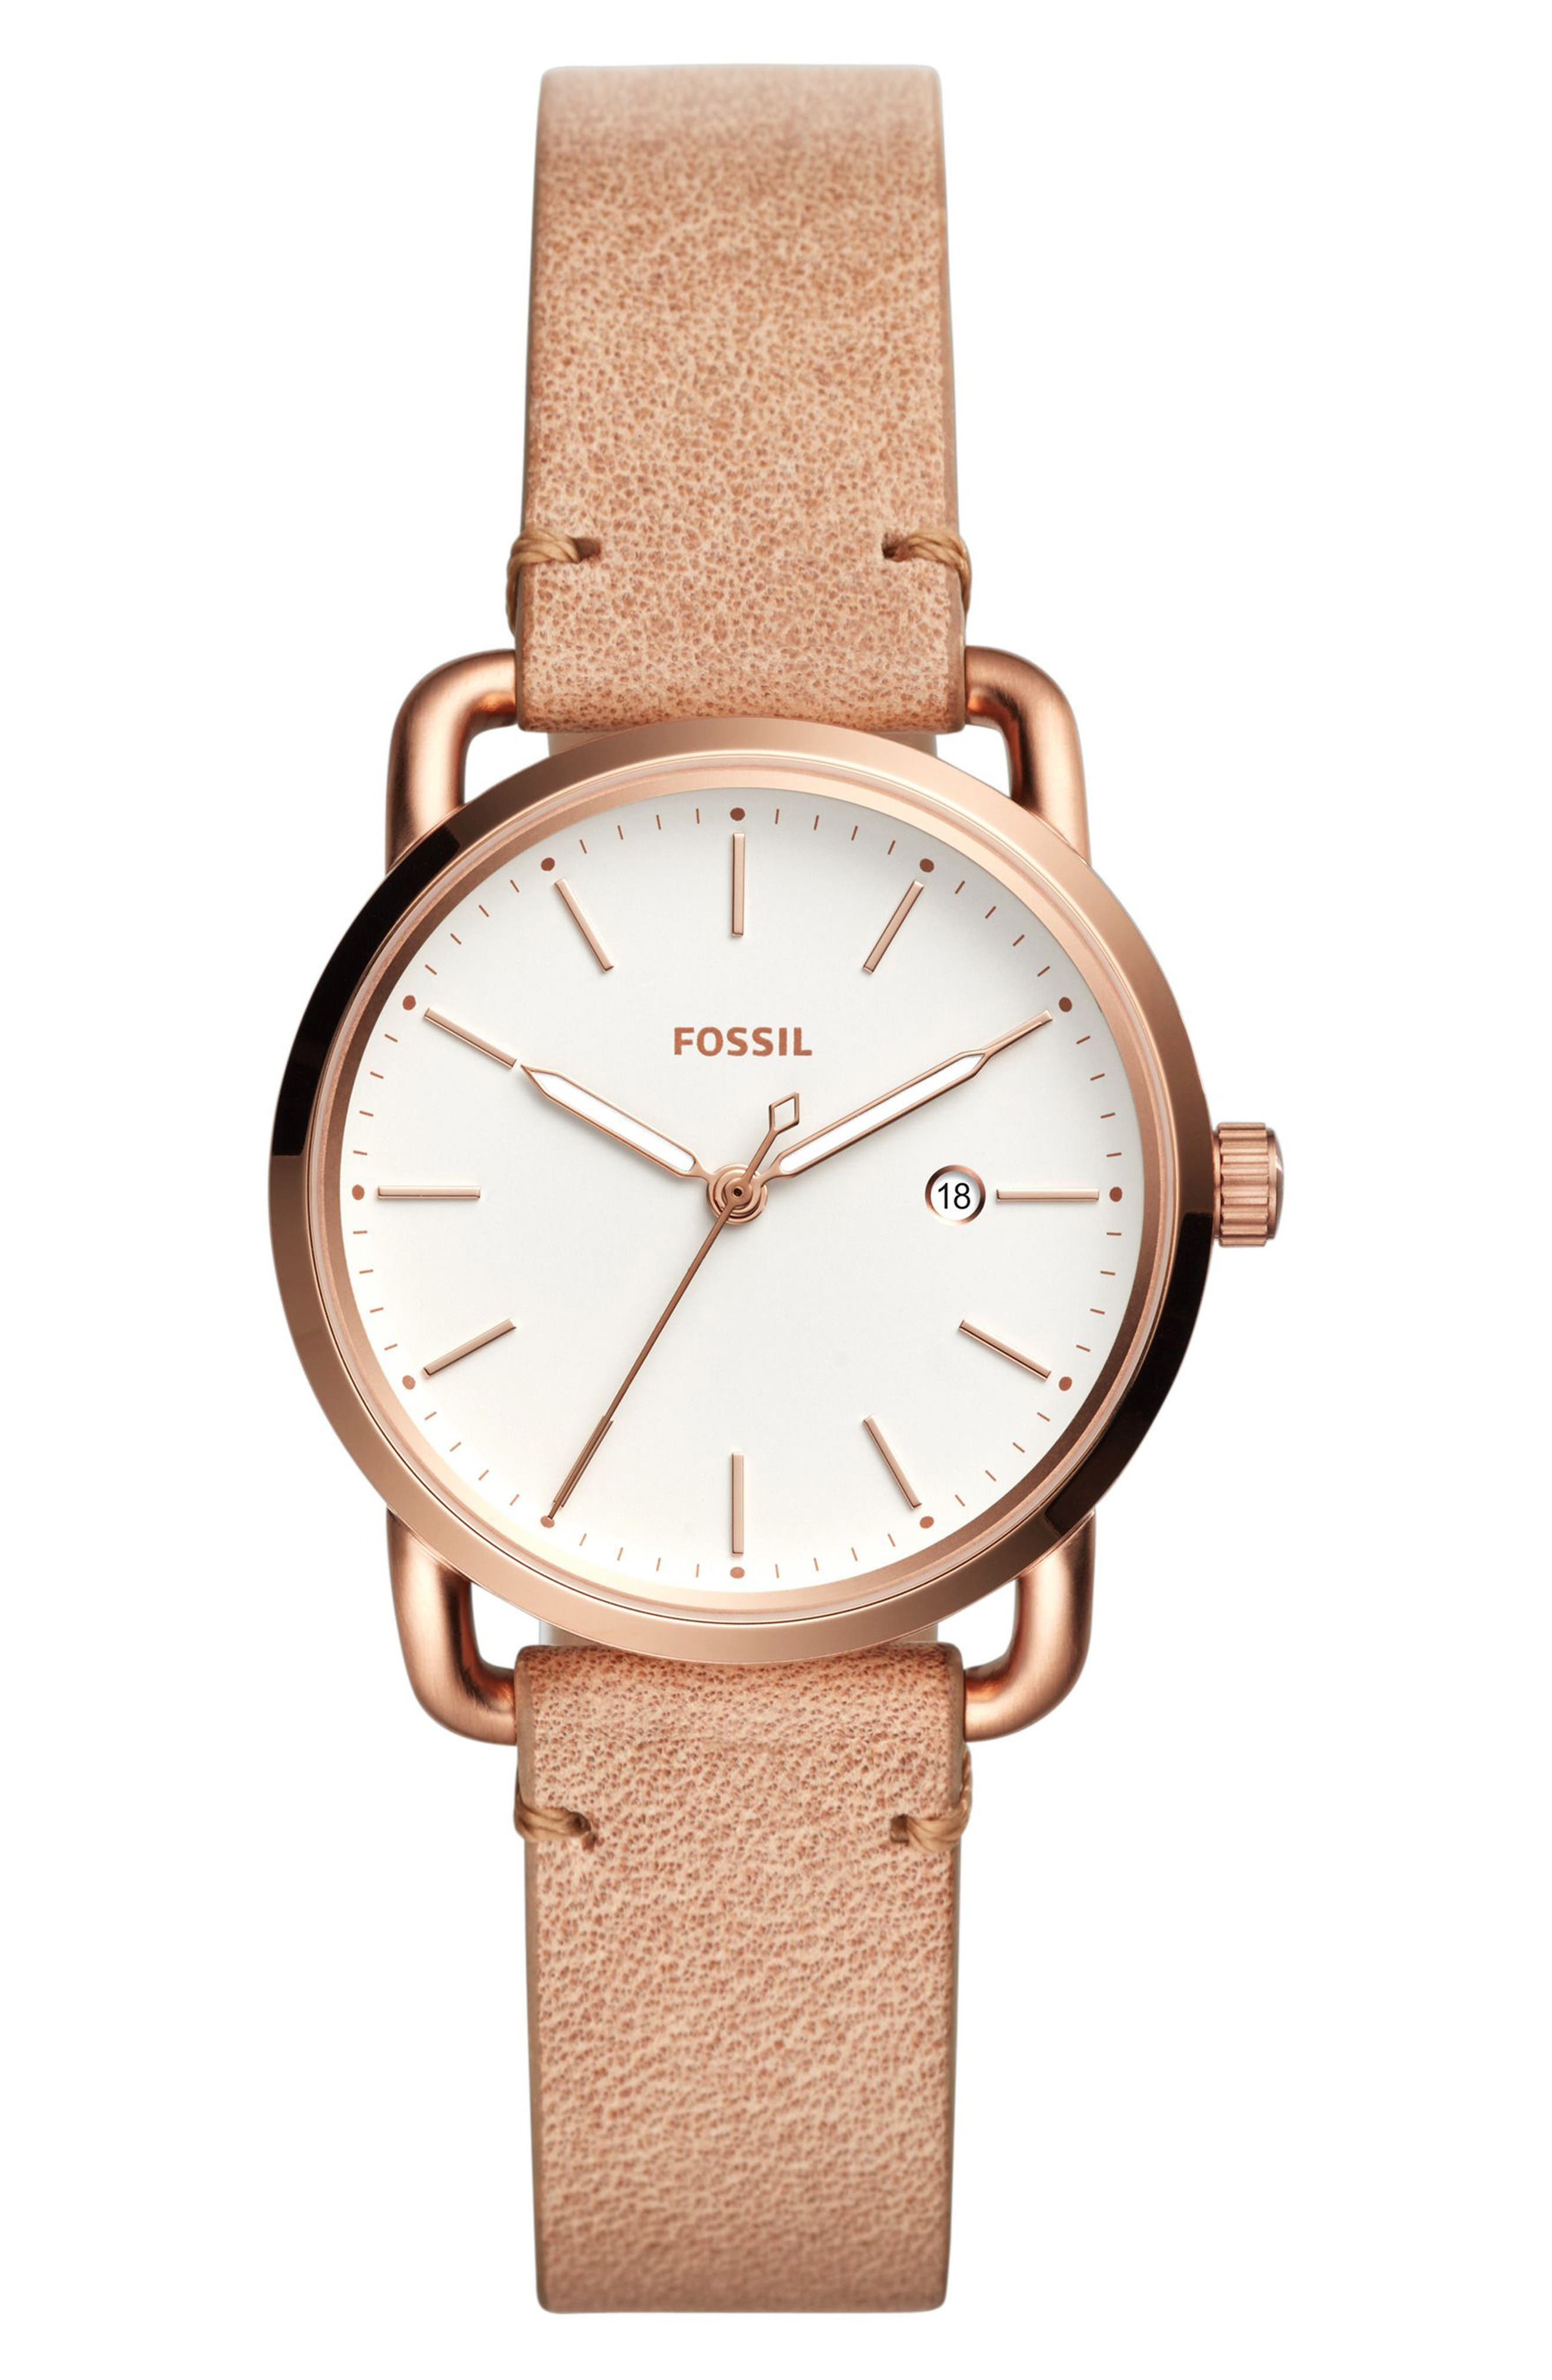 Main Image - Fossil Commuter Leather Strap Watch, 34mm